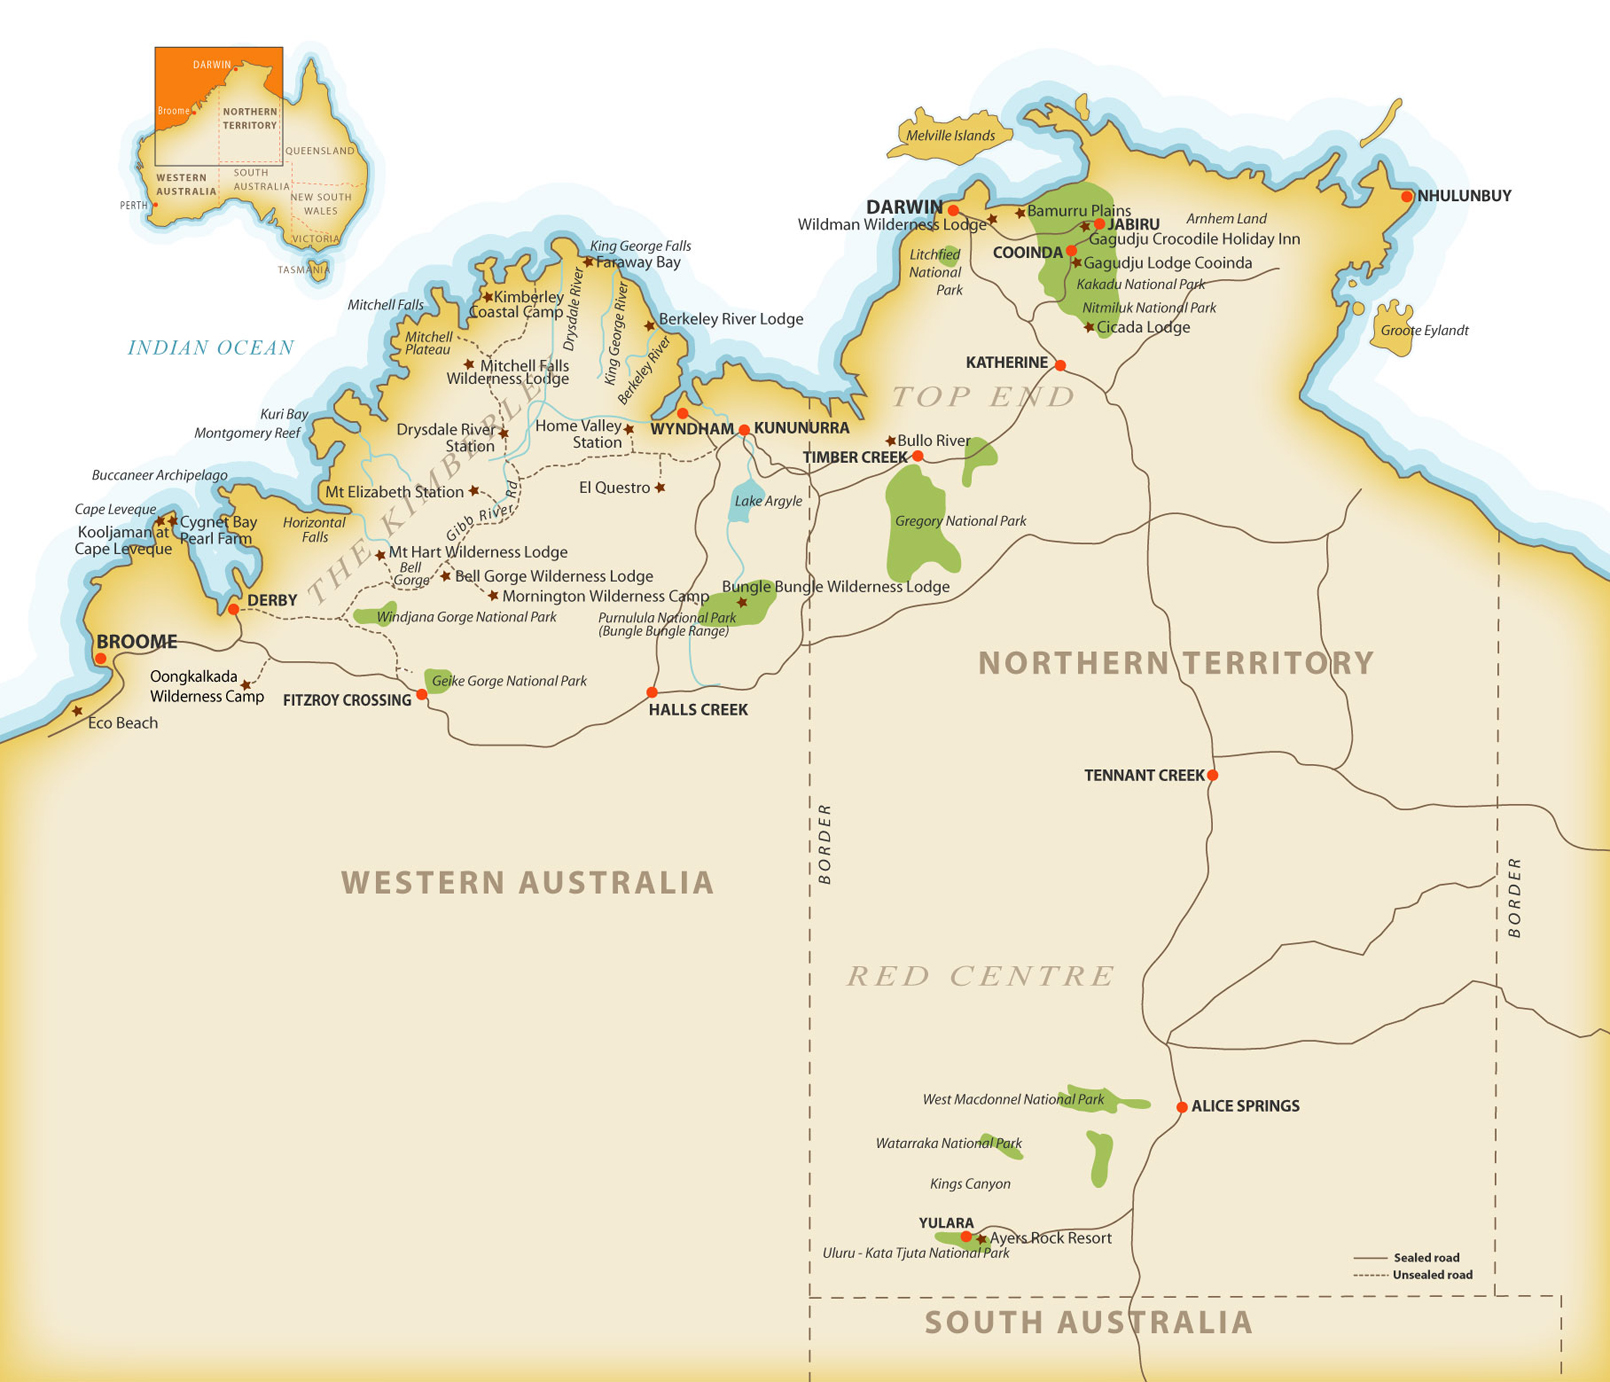 Kimberley | Western Australia | About the Kimberly on great artesian basin australia map, townsville australia map, devil's marbles australia map, australian capital territory australia map, west australia map, new zealand and australia map, lake argyle australia map, kuri bay australia map, cape york peninsula australia map, lake eyre basin australia map, torres strait australia map, great australian bight australia map, sydney australia map, the top end australia map, major mountain ranges on world map, ballarat australia map, dundee australia map, hamilton australia map, wellington australia map, australian central lowlands map,